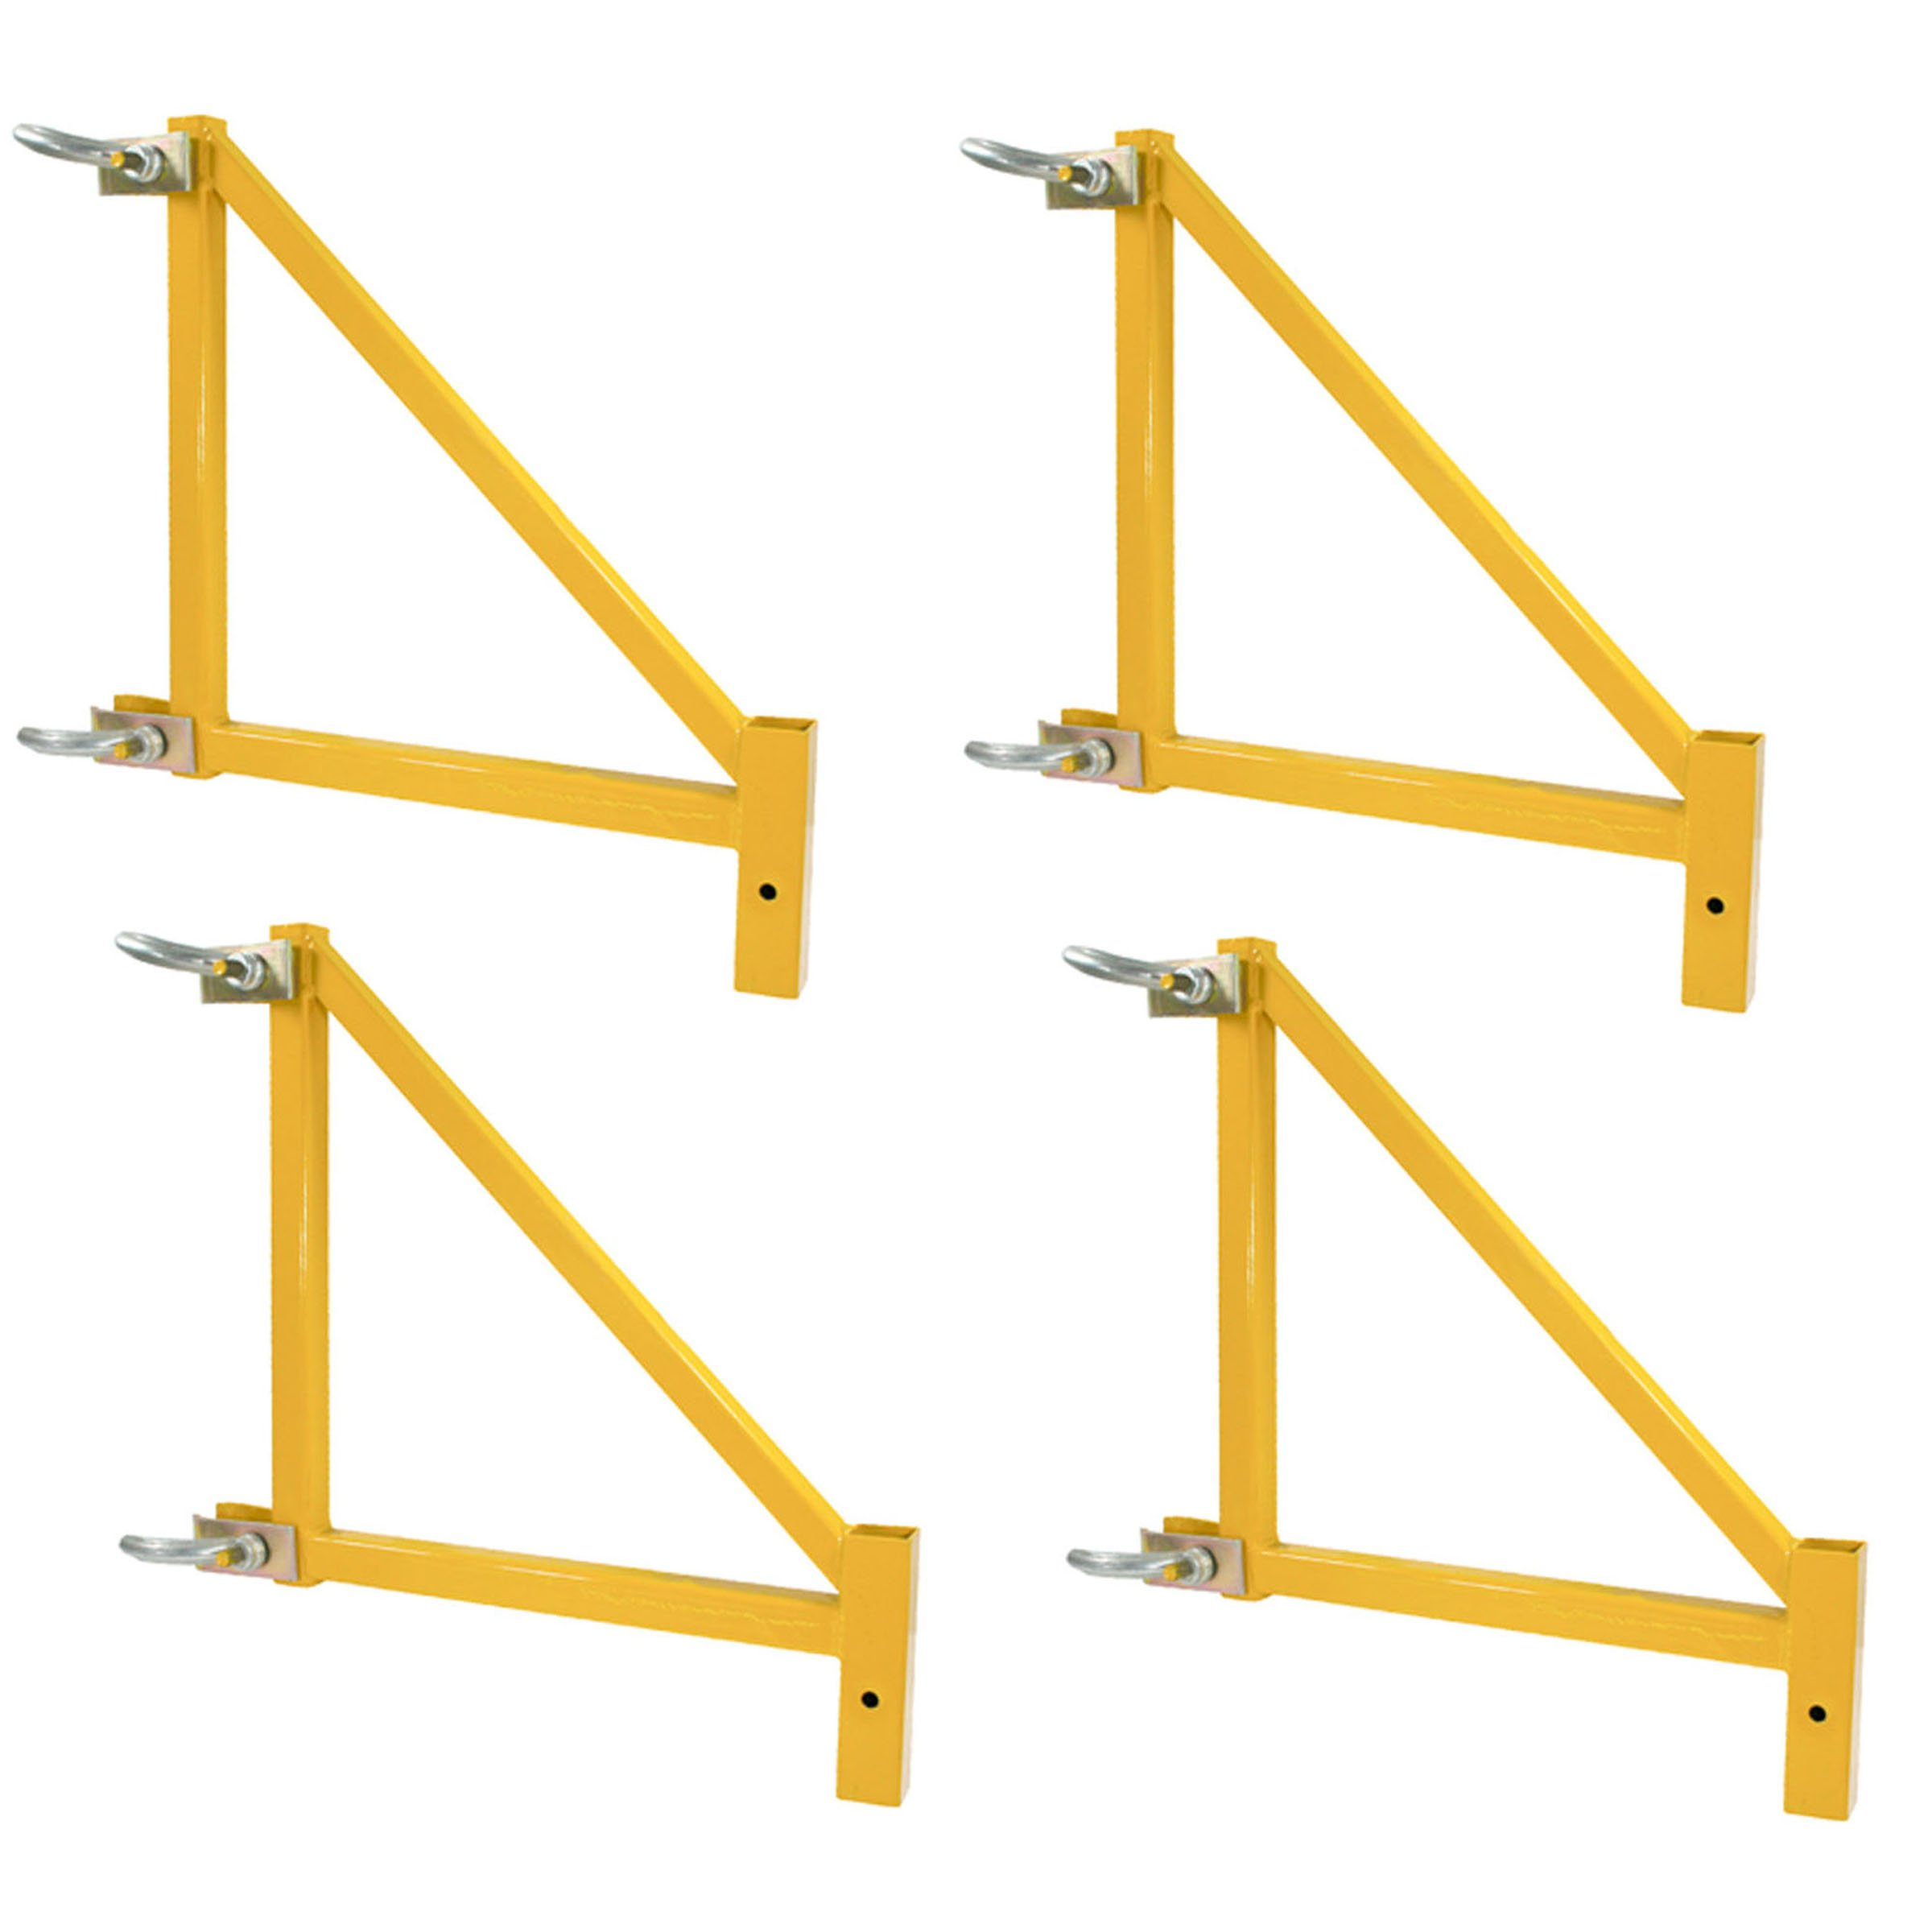 Werner SRO-72-4 Outrigger Accessory, 4-Pack by Werner